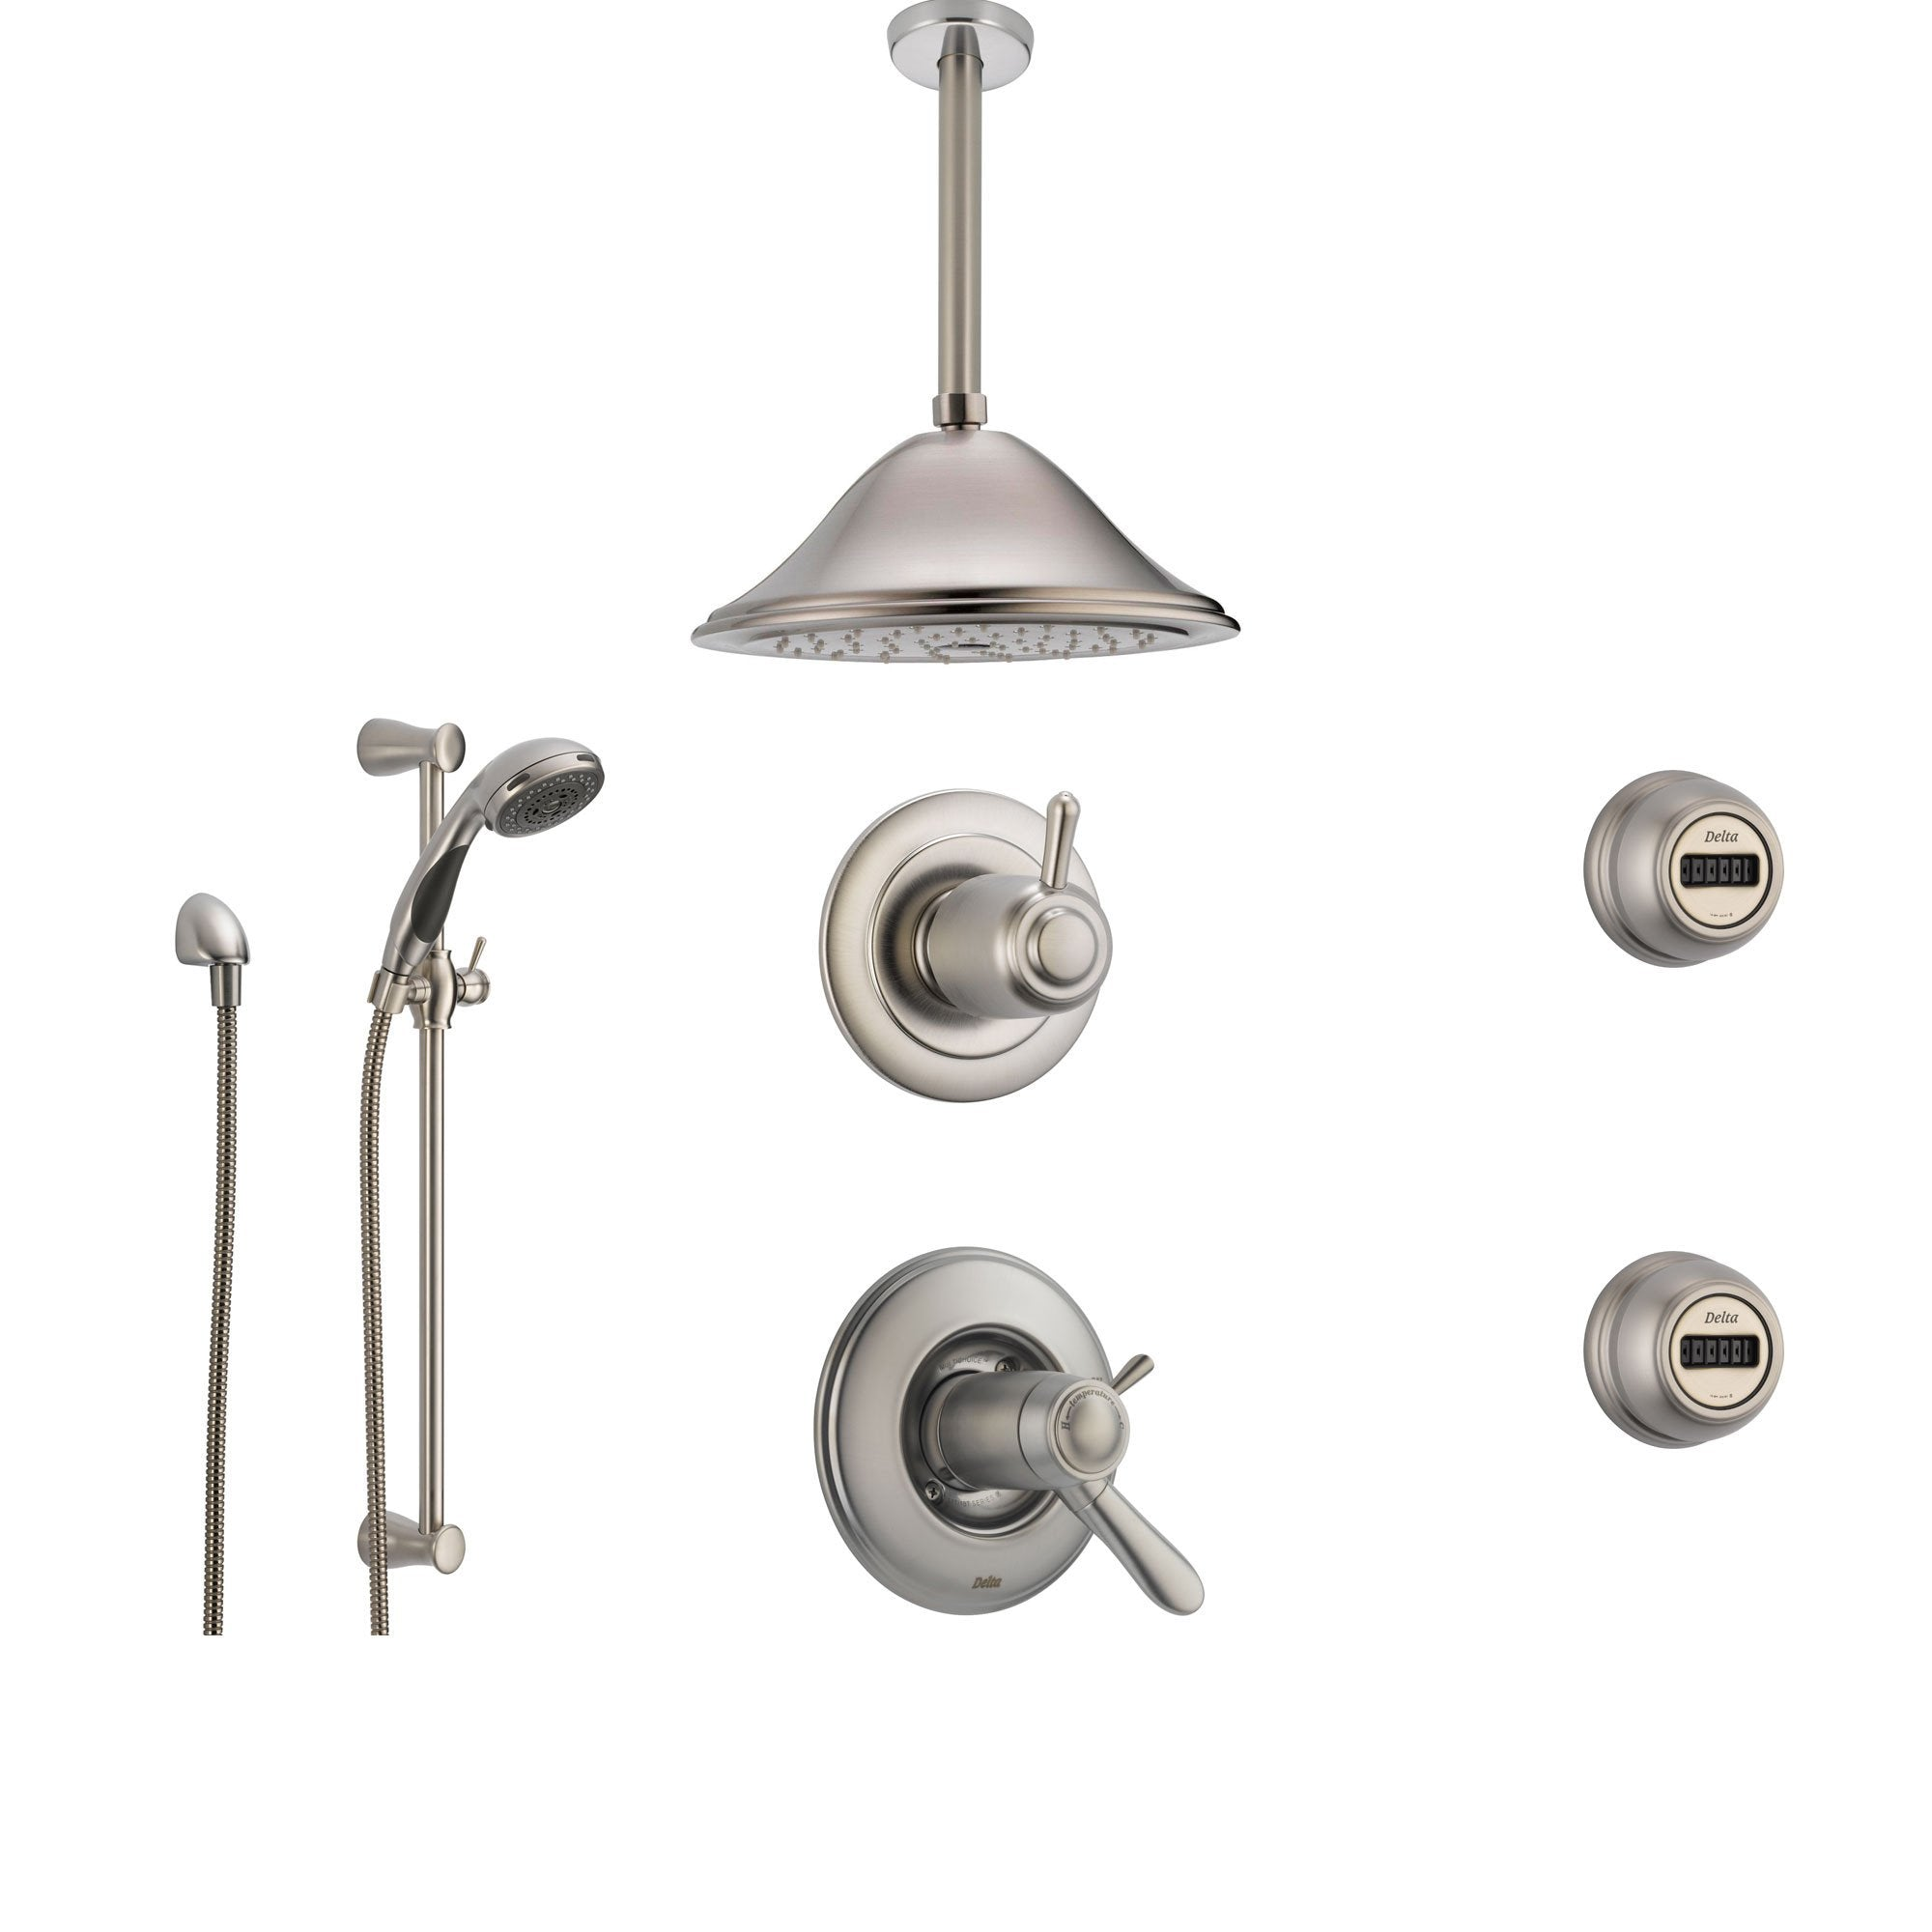 Delta Lahara Stainless Steel Shower System with Thermostatic Shower Handle, 6-setting Diverter, Large Ceiling Mount Rain Showerhead, Handheld Shower, and 2 Body Sprays SS17T3894SS